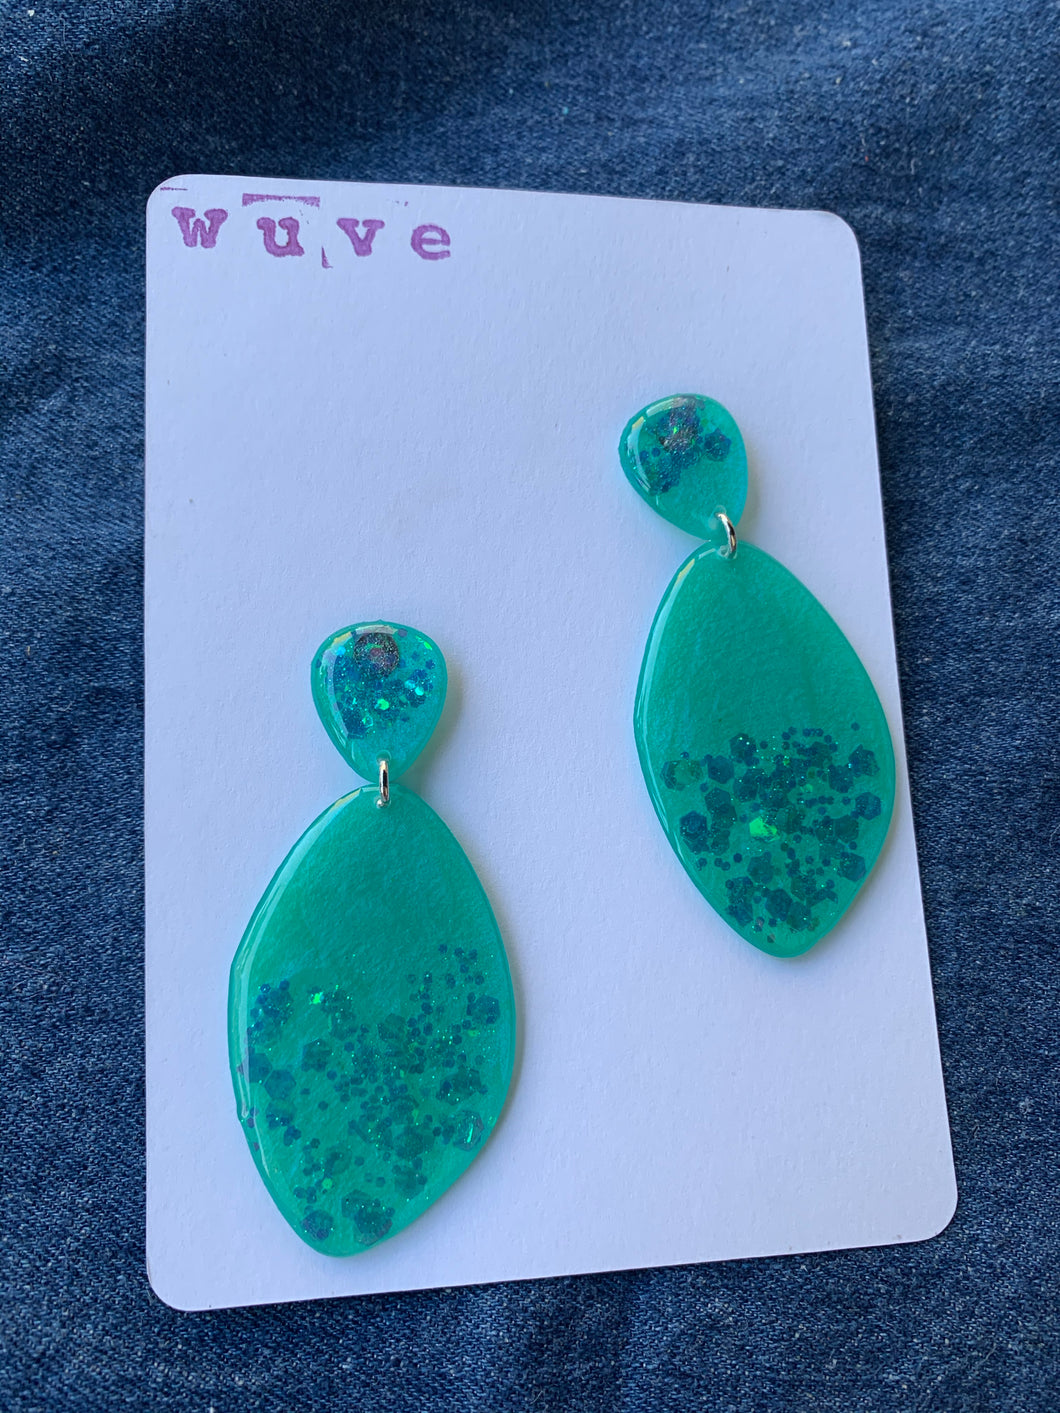 Wuve Handmade Abstract Glitter Drop Earrings